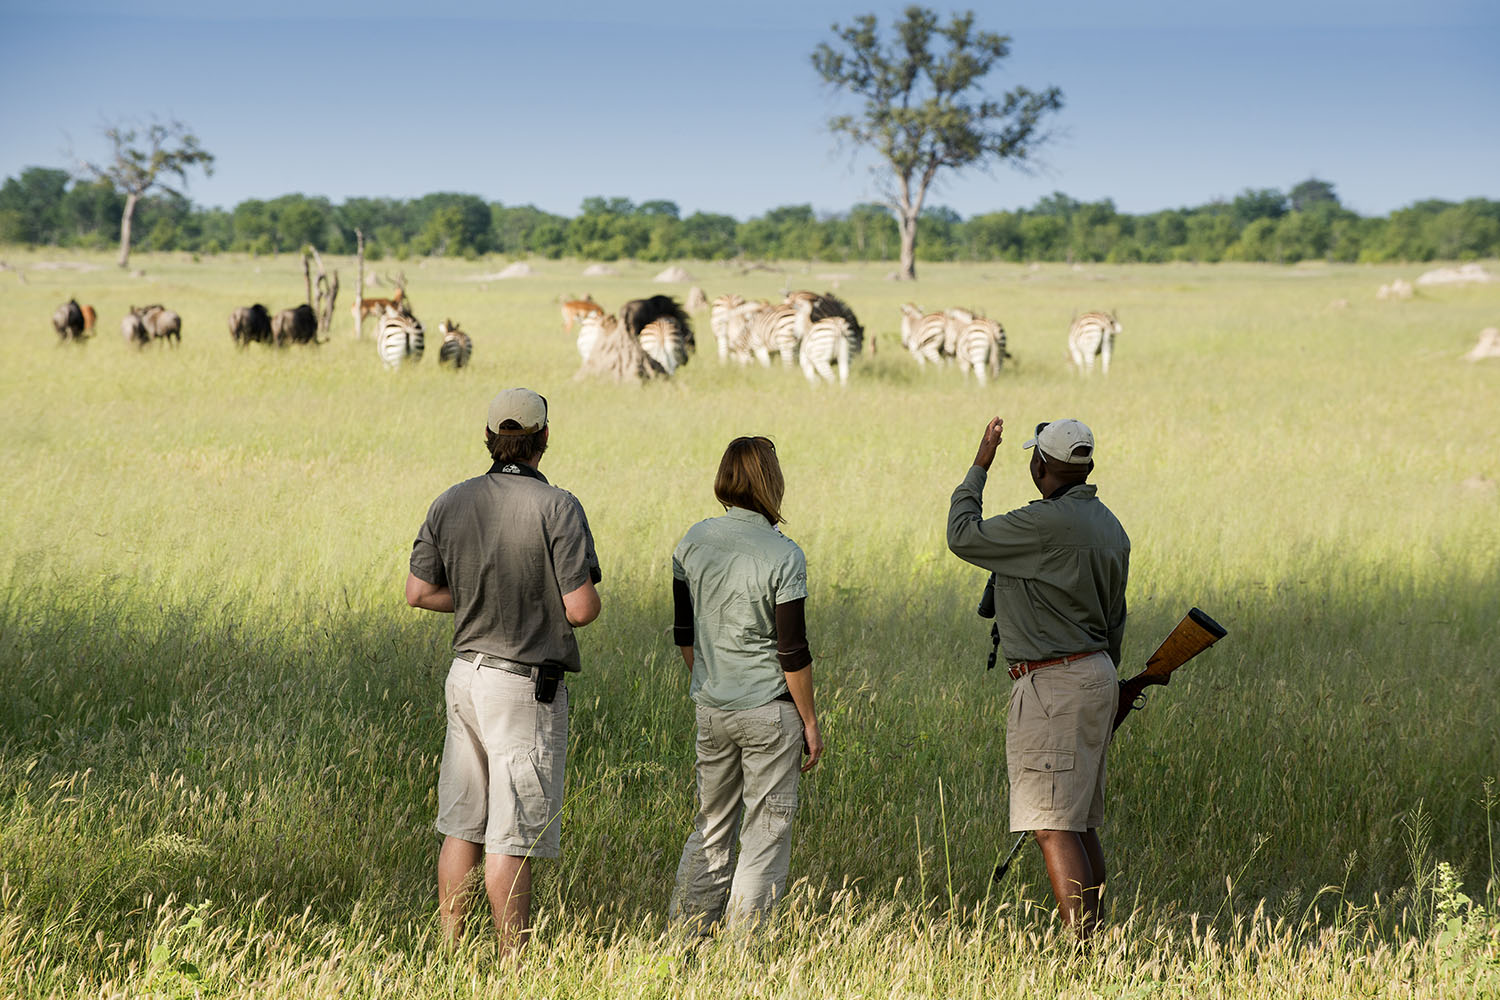 somalisa acacia zimbabwe-lodges-zambia-in-style-safaris-wildlife-africa-hwange-national-park-staff-walking-safari-wildlife